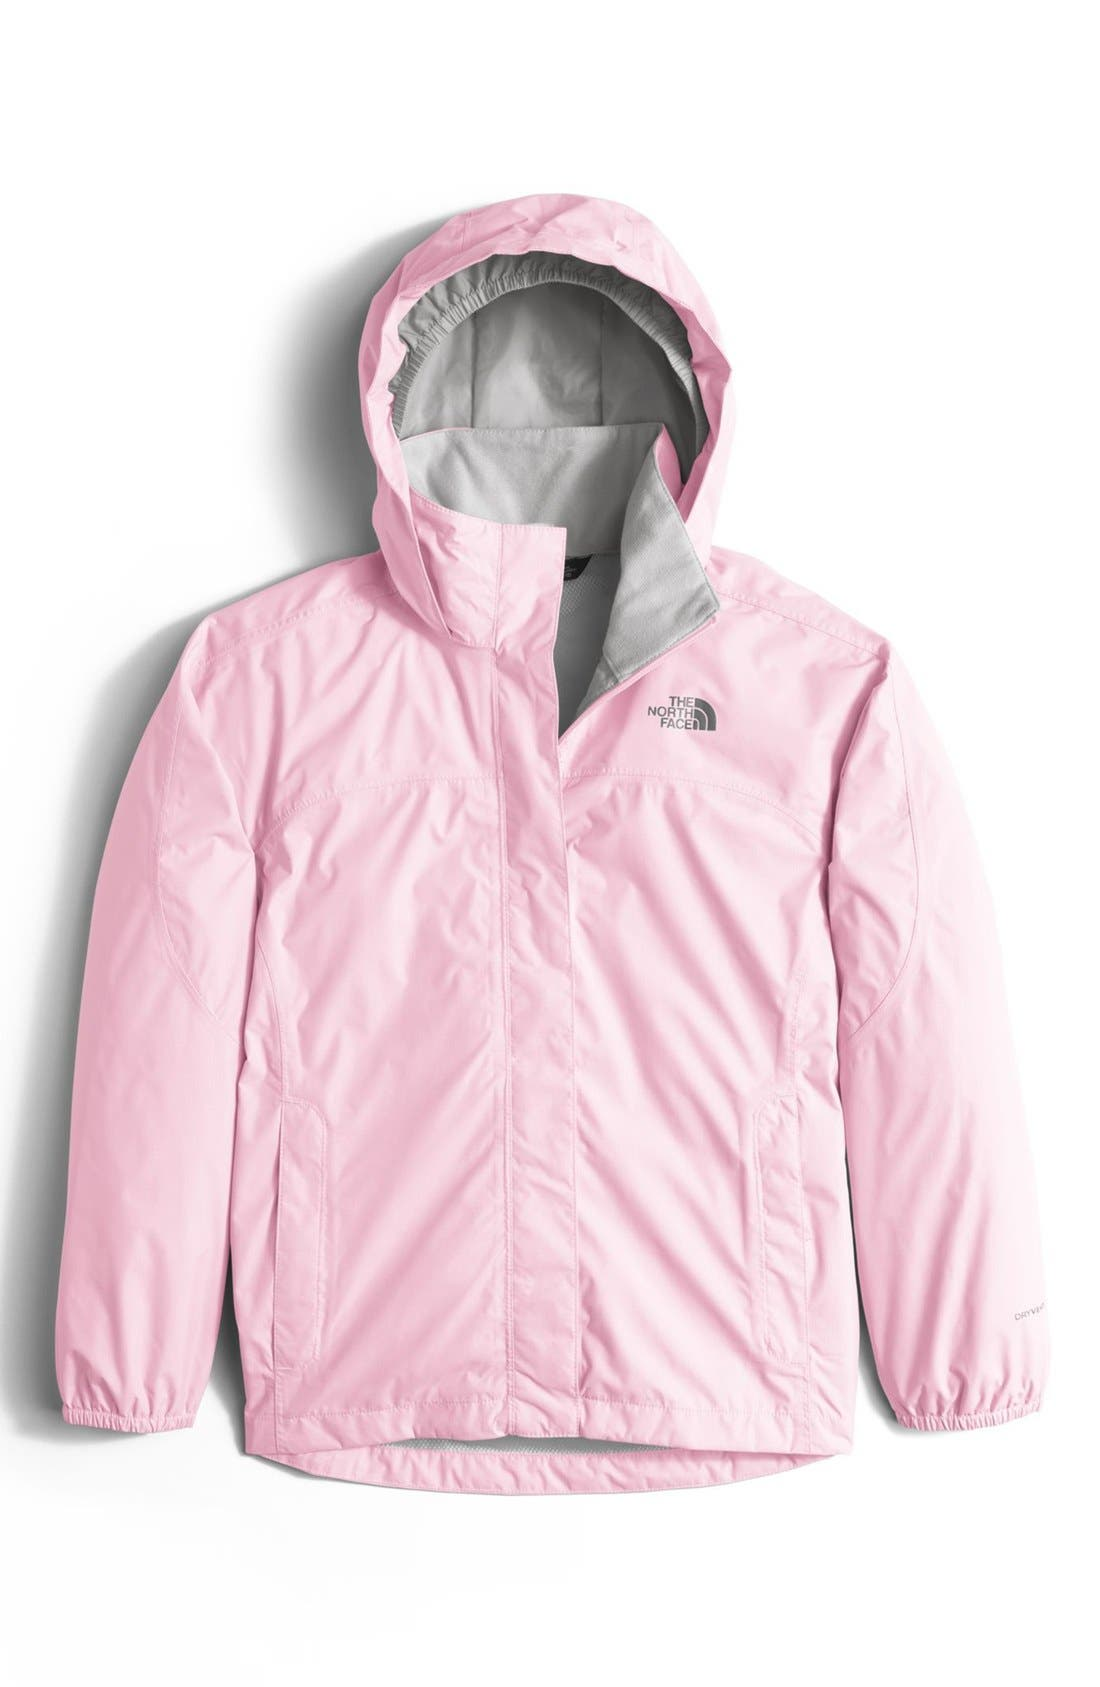 Alternate Image 1 Selected - The North Face 'Resolve' Waterproof Rain Jacket (Little Girls & Big Girls)